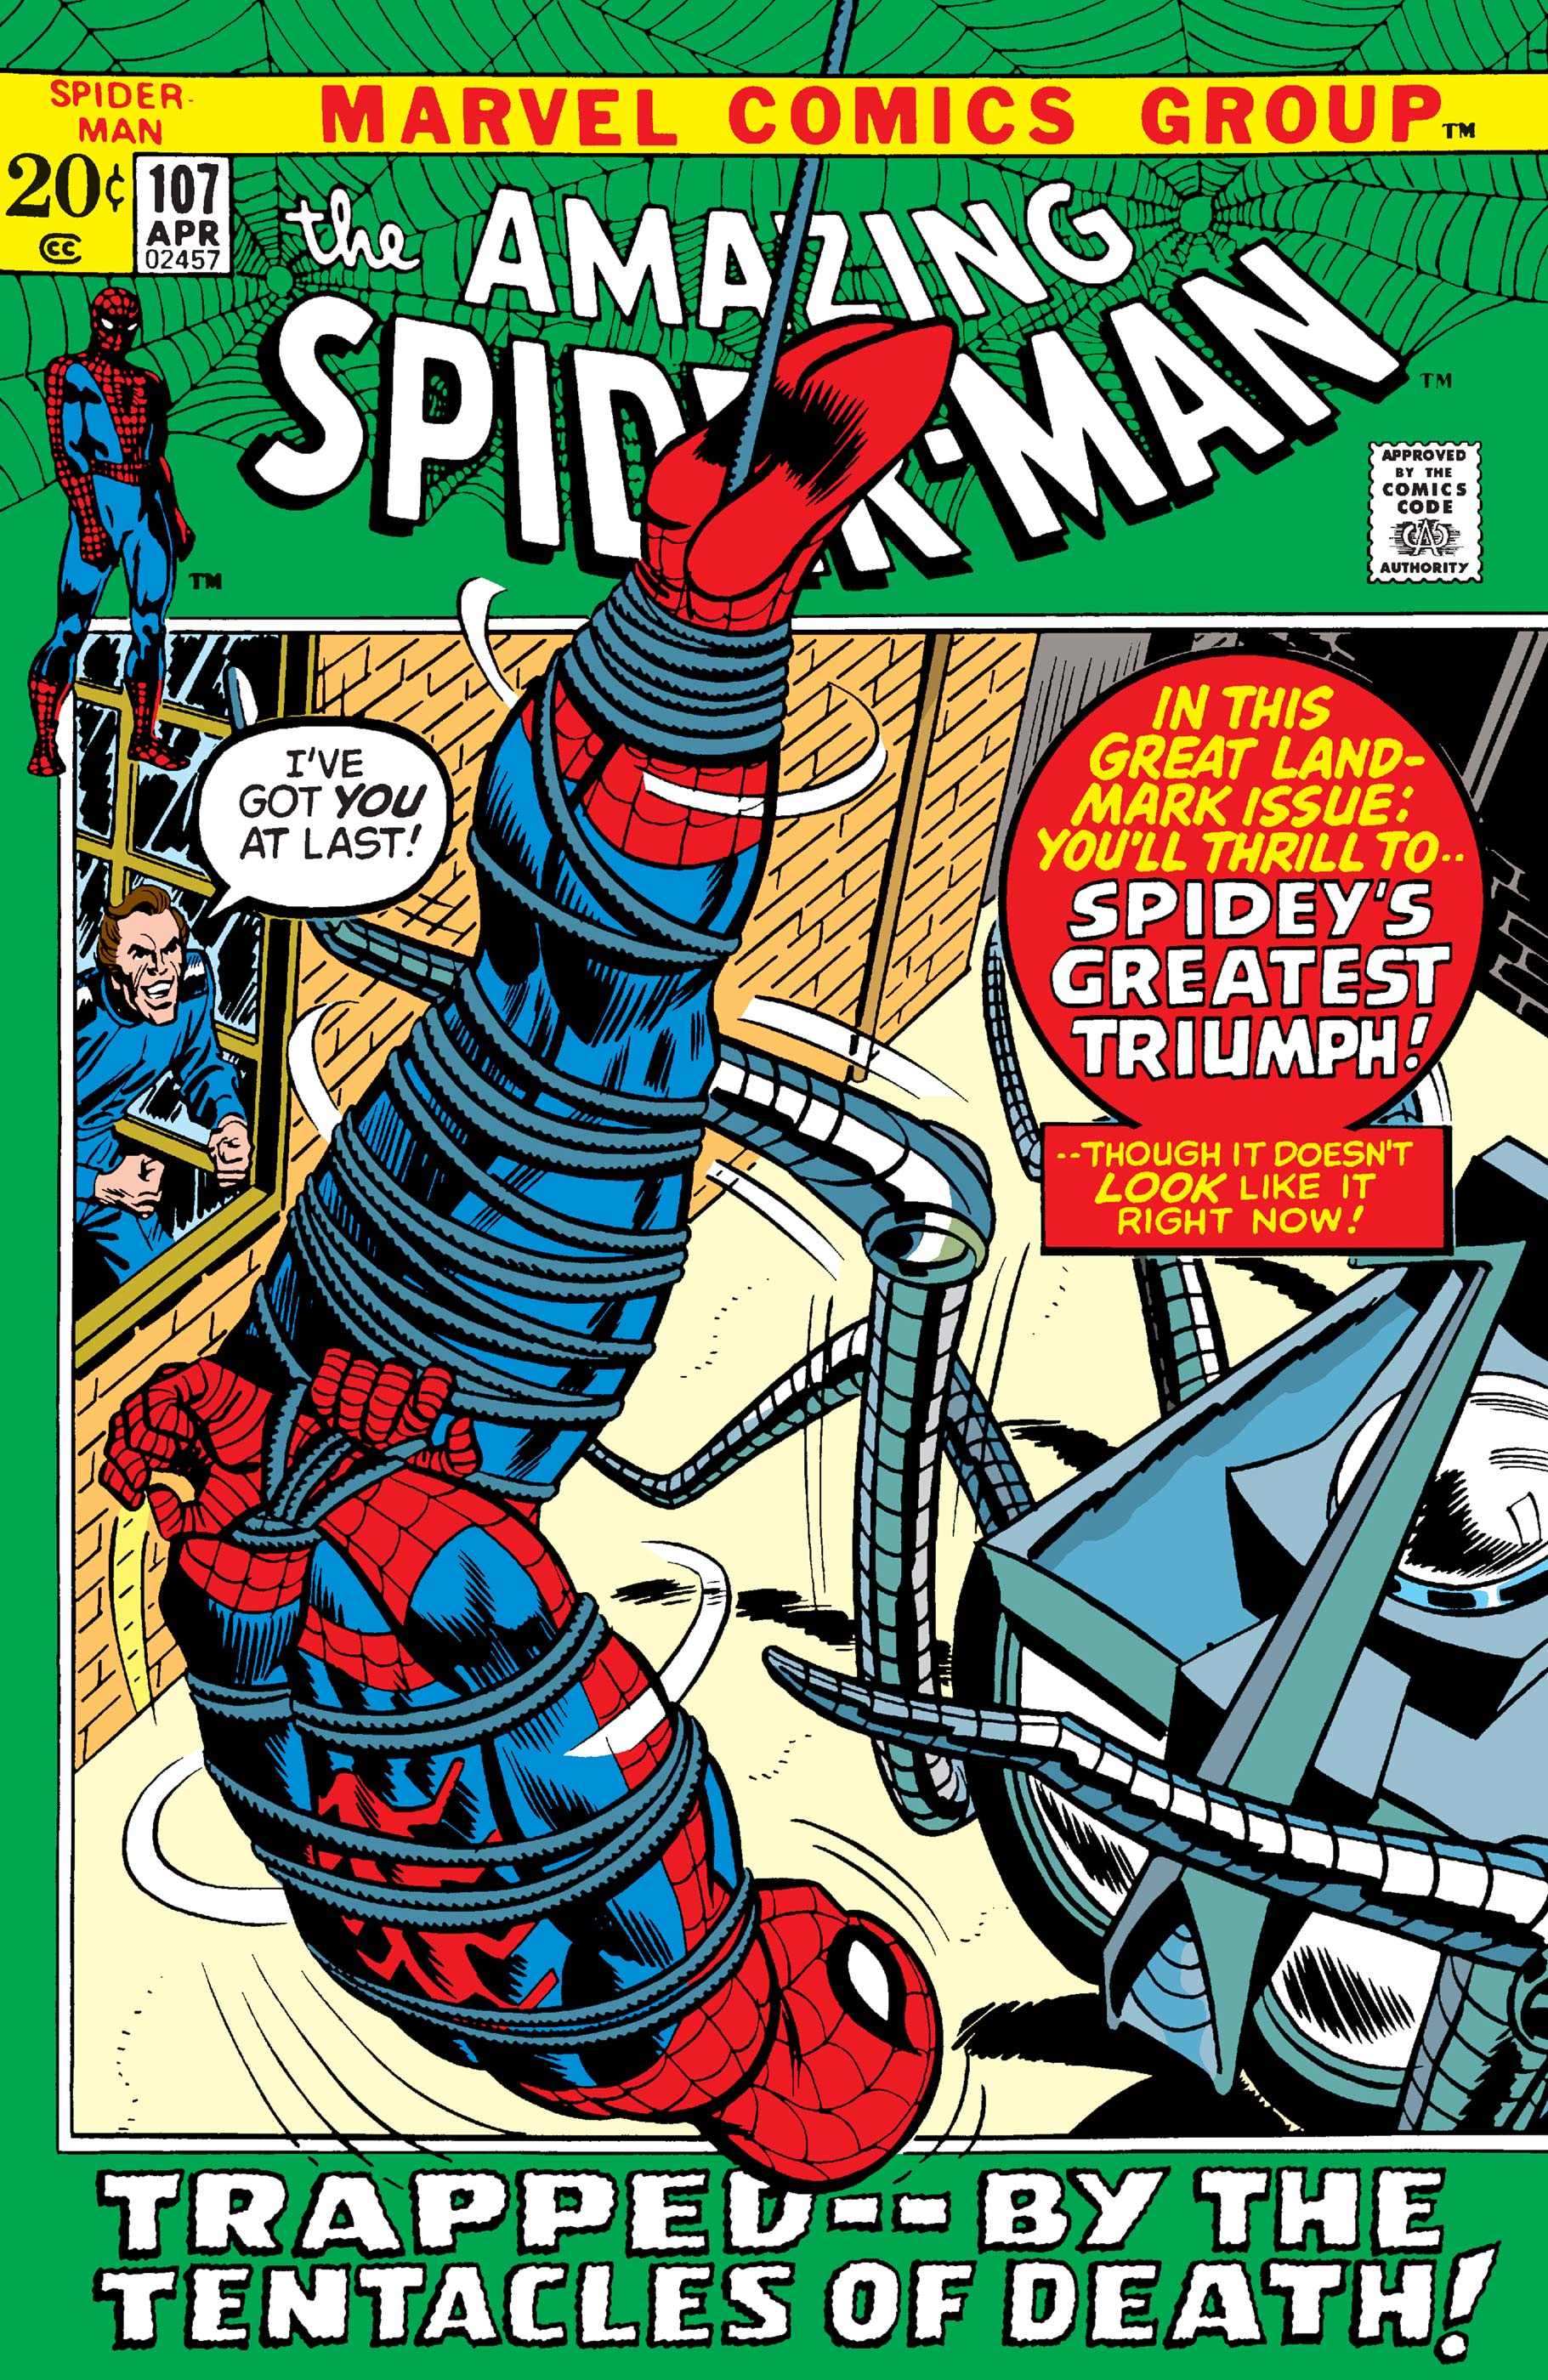 The Amazing Spider-Man (1963) #107